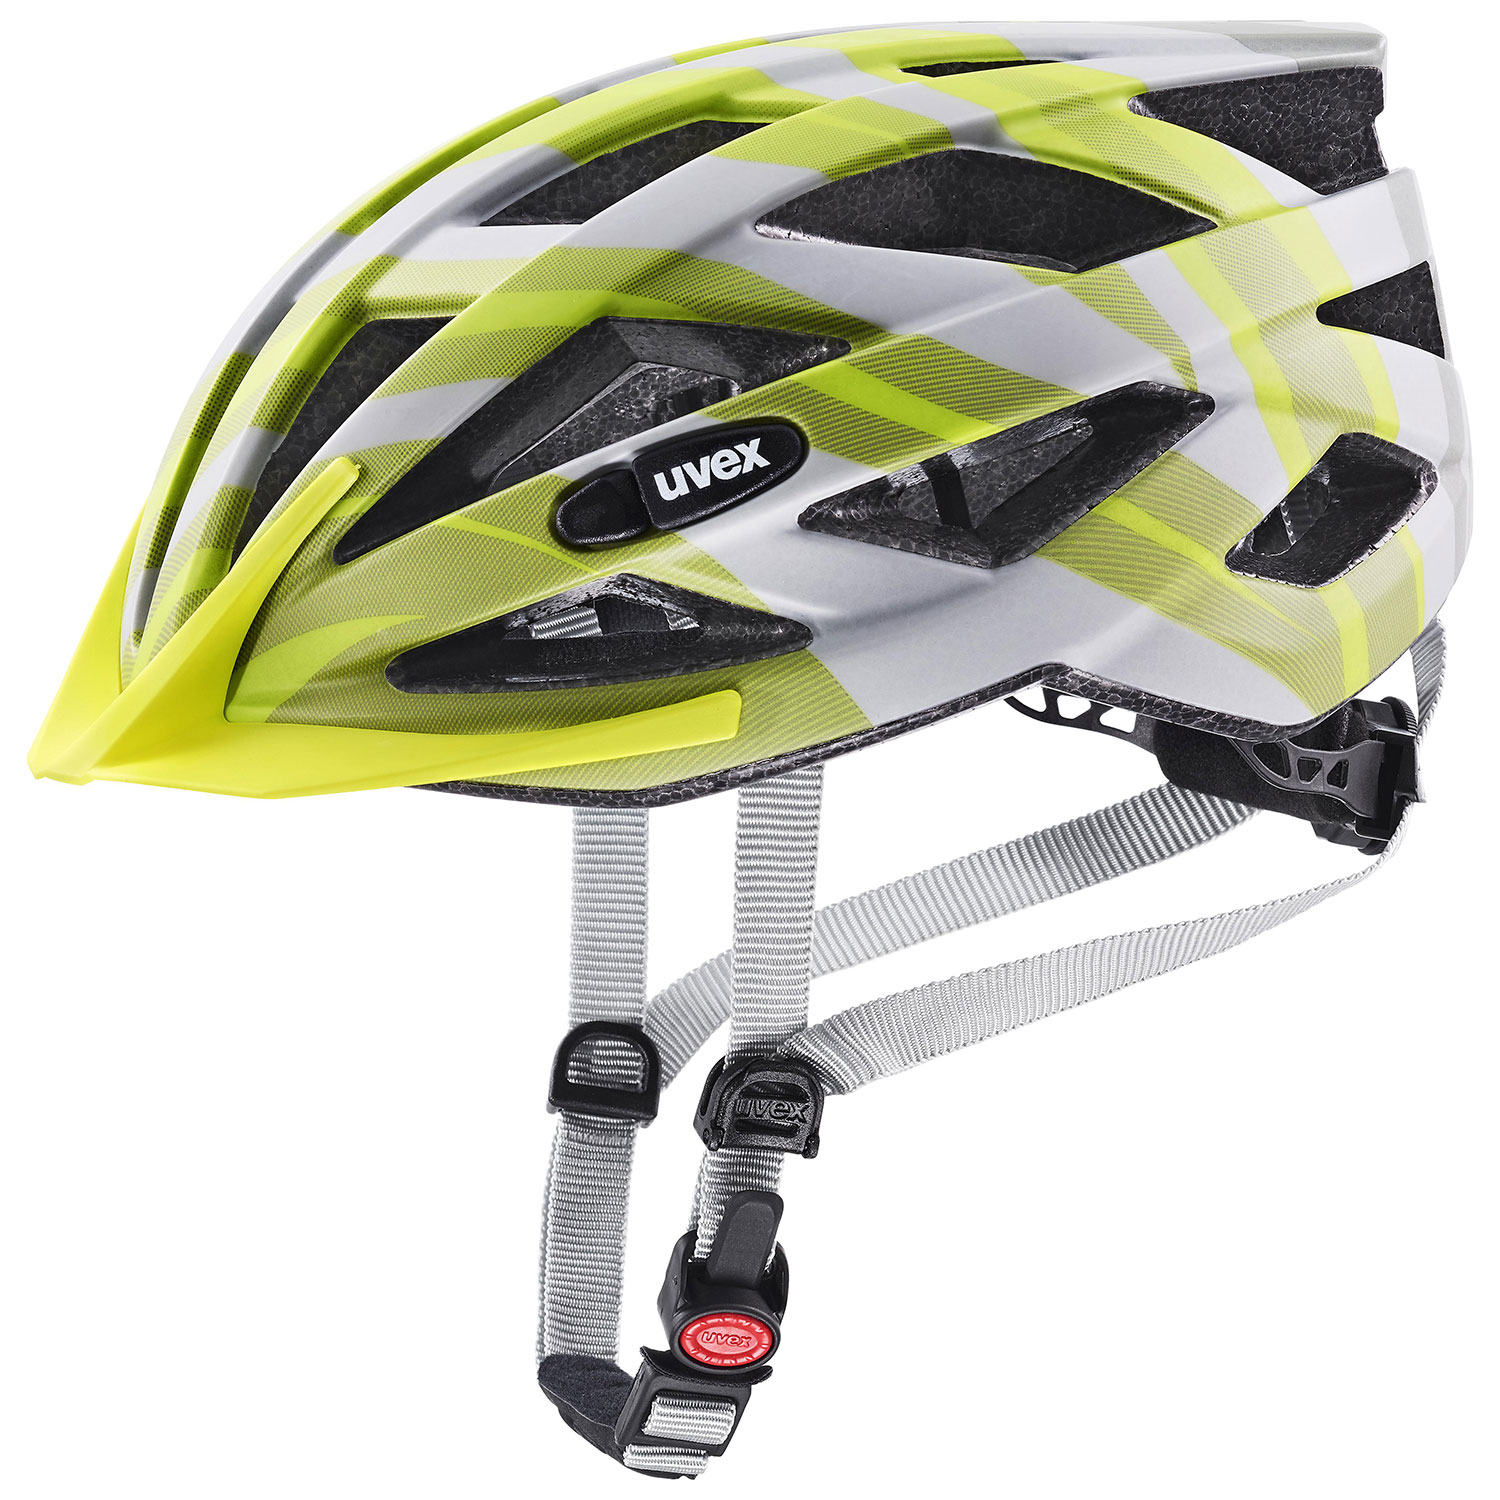 2021 UVEX HELMA AIR WING CC, GREY - LIME MAT 52-57